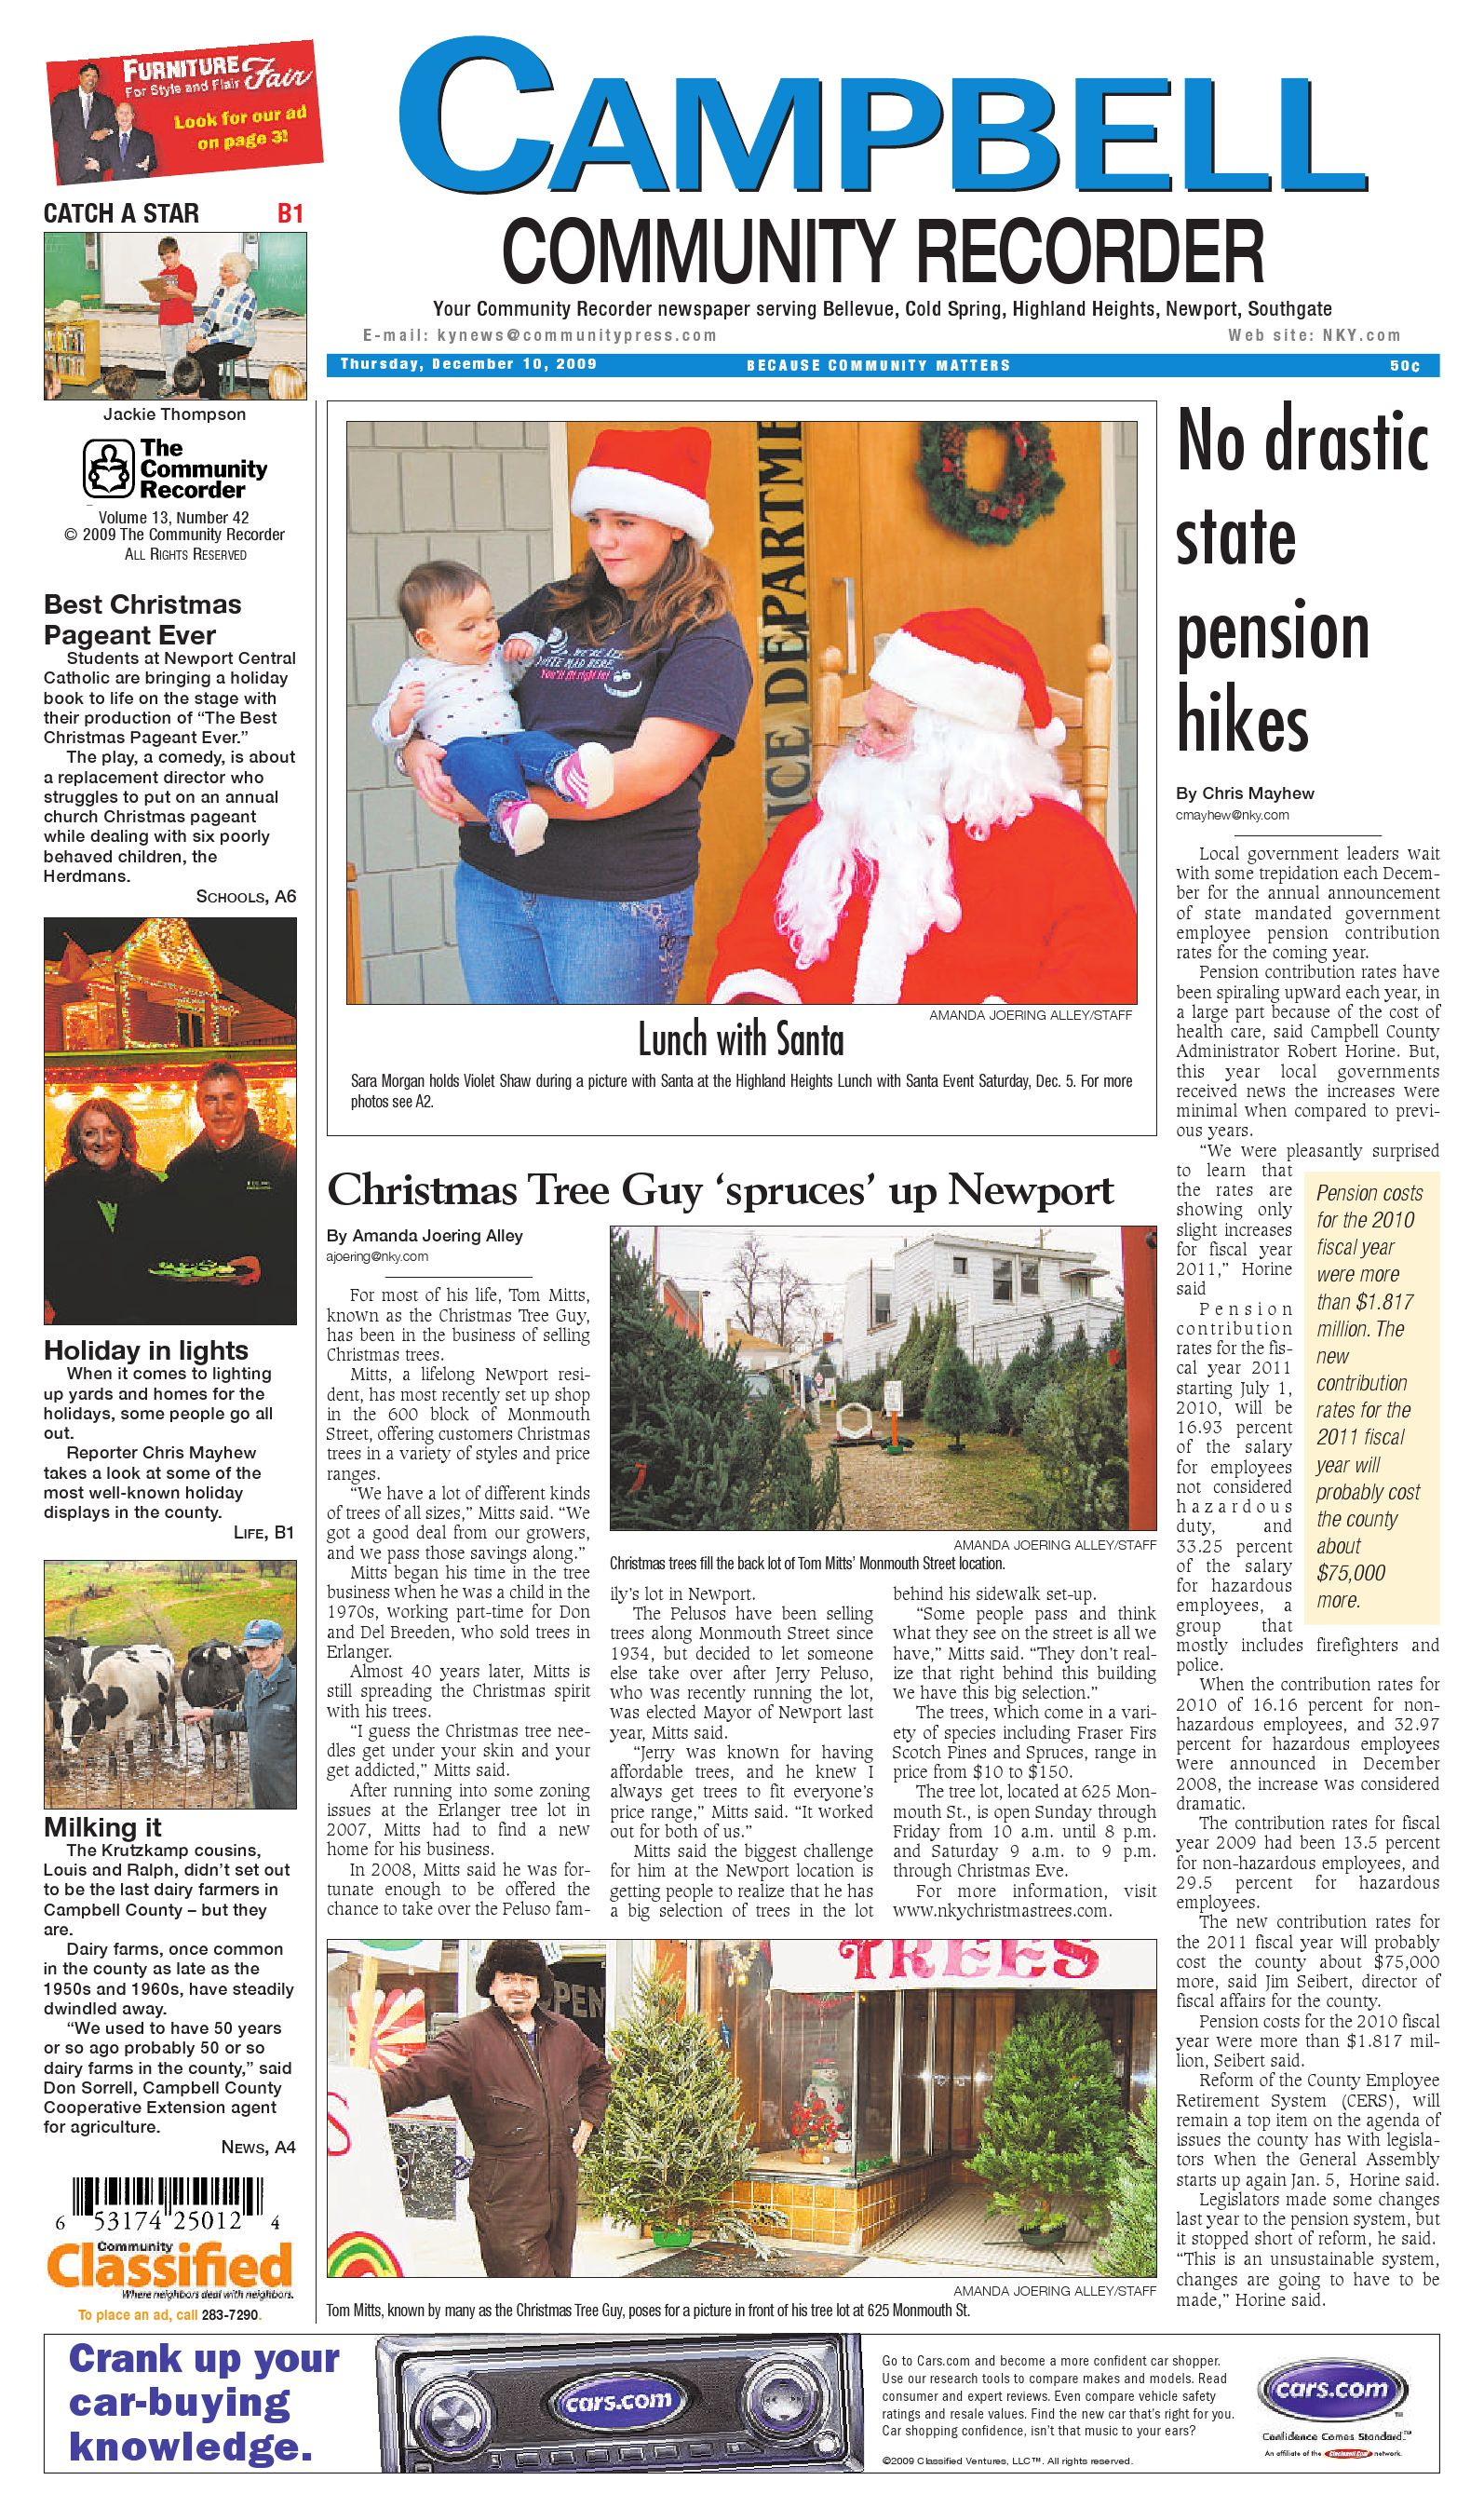 campbell-community-recorder-121009 by Enquirer Media - issuu